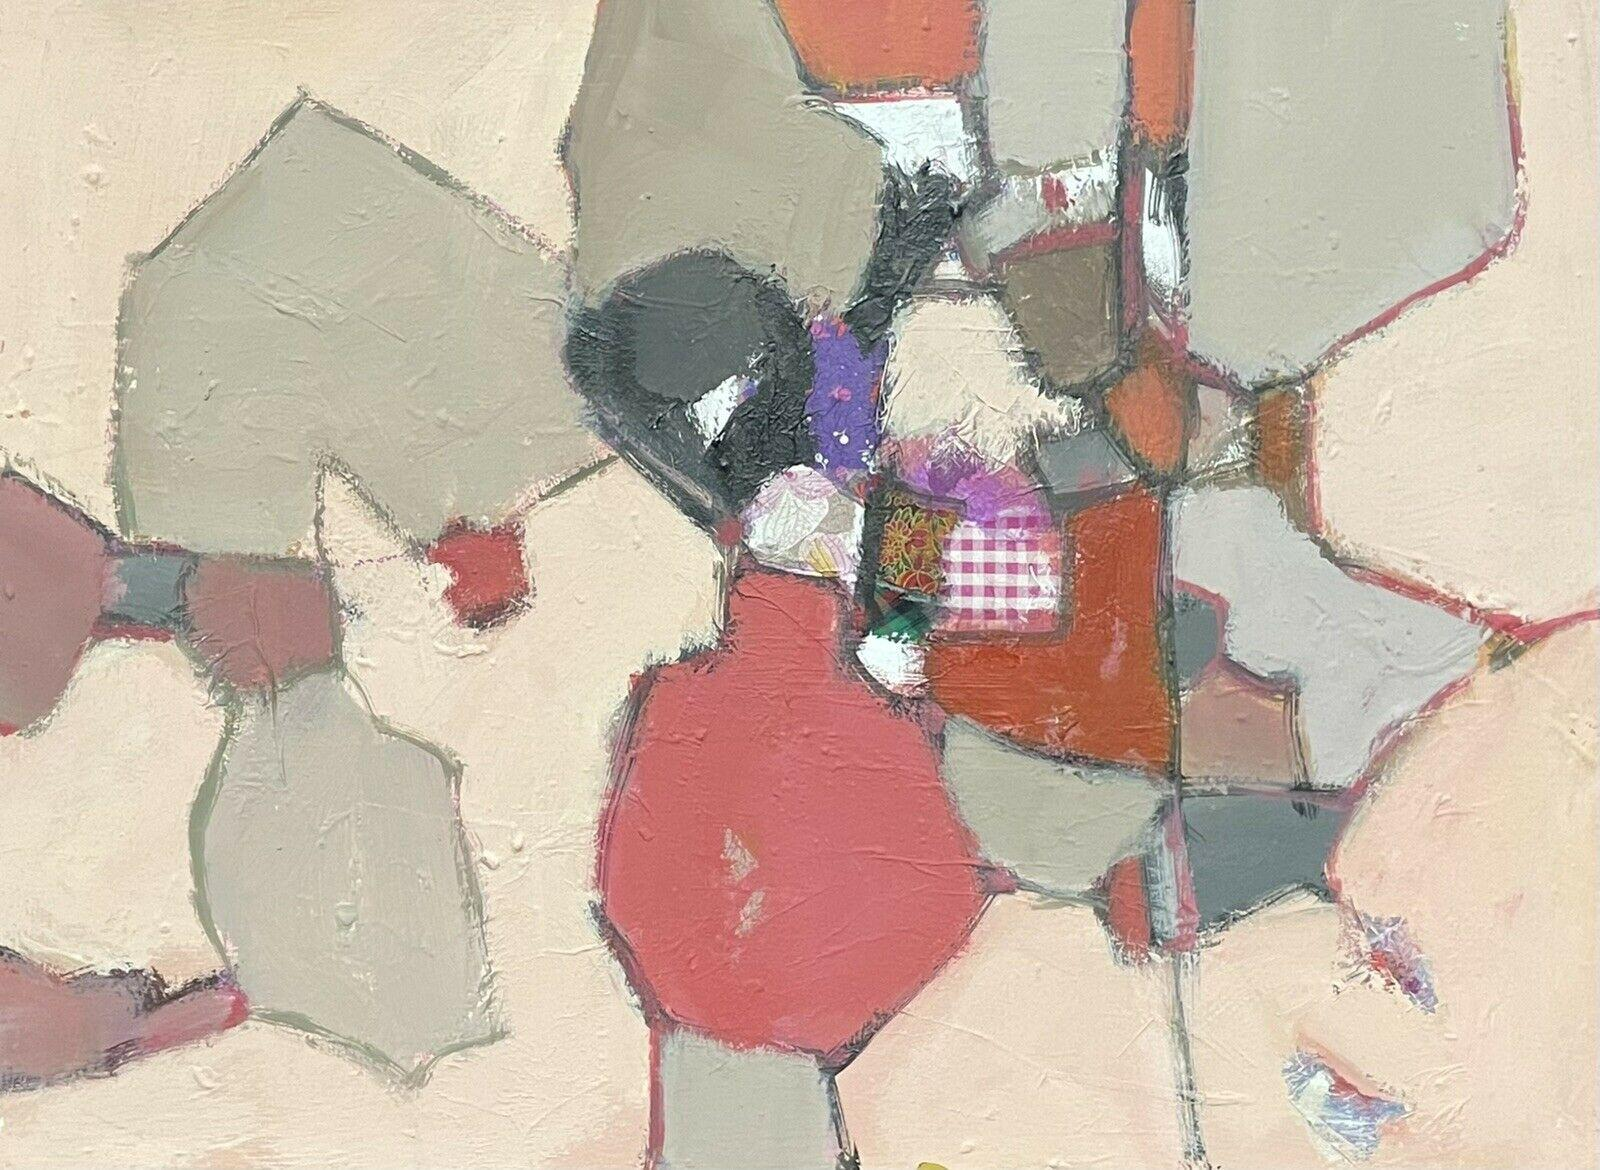 LEROY - FRENCH CONTEMPORARY ABSTRACT CUBIST PAINTING WITH COLLAGE